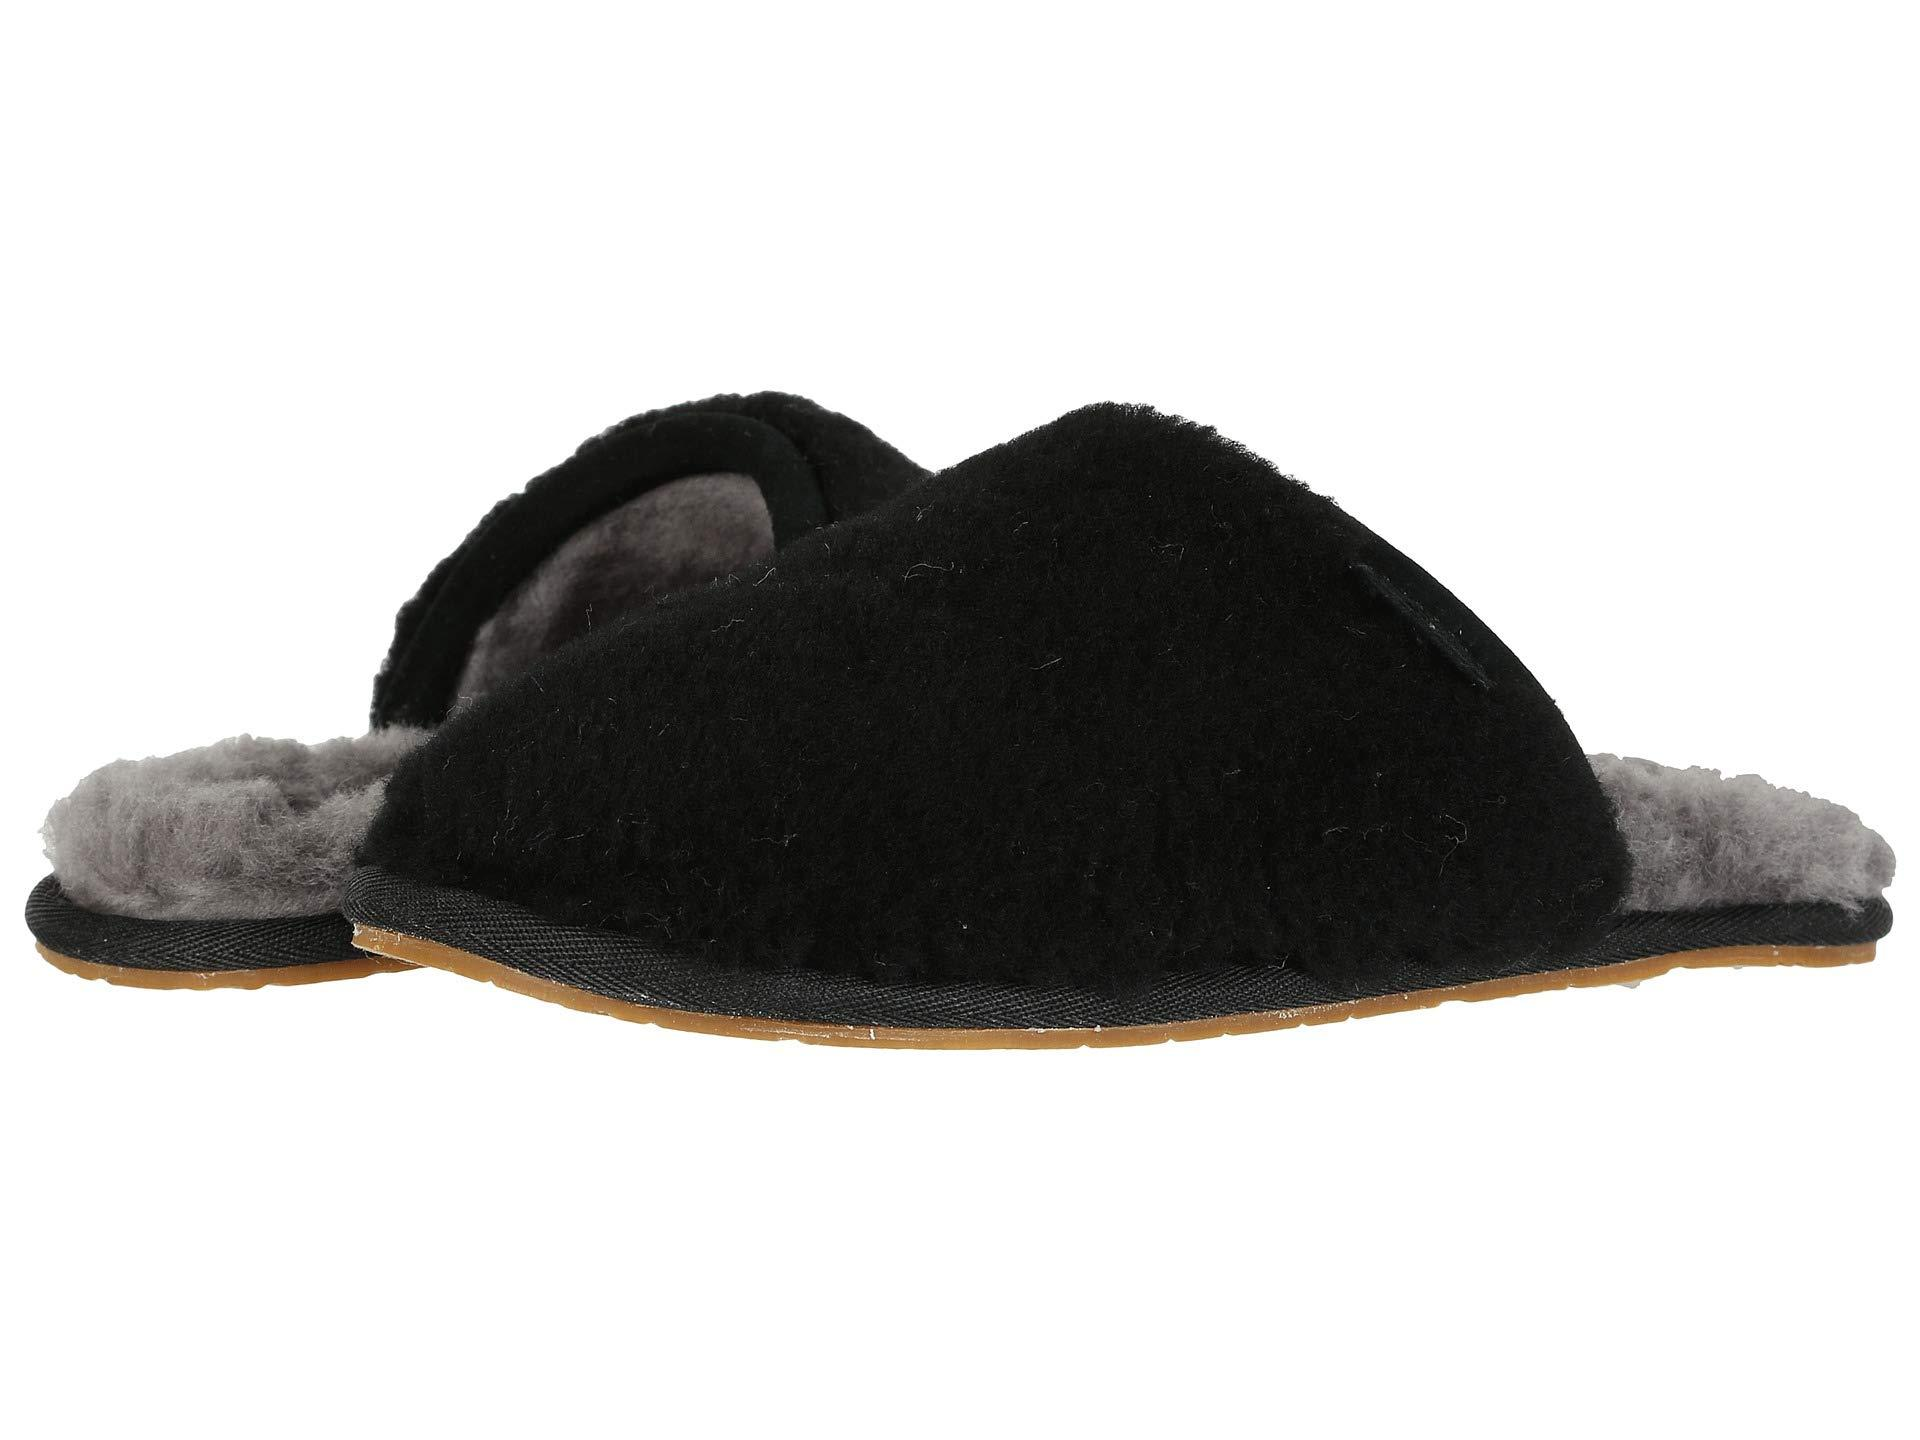 81f8baded53 Lyst - UGG Fluffette (black) Women's Slippers in Black